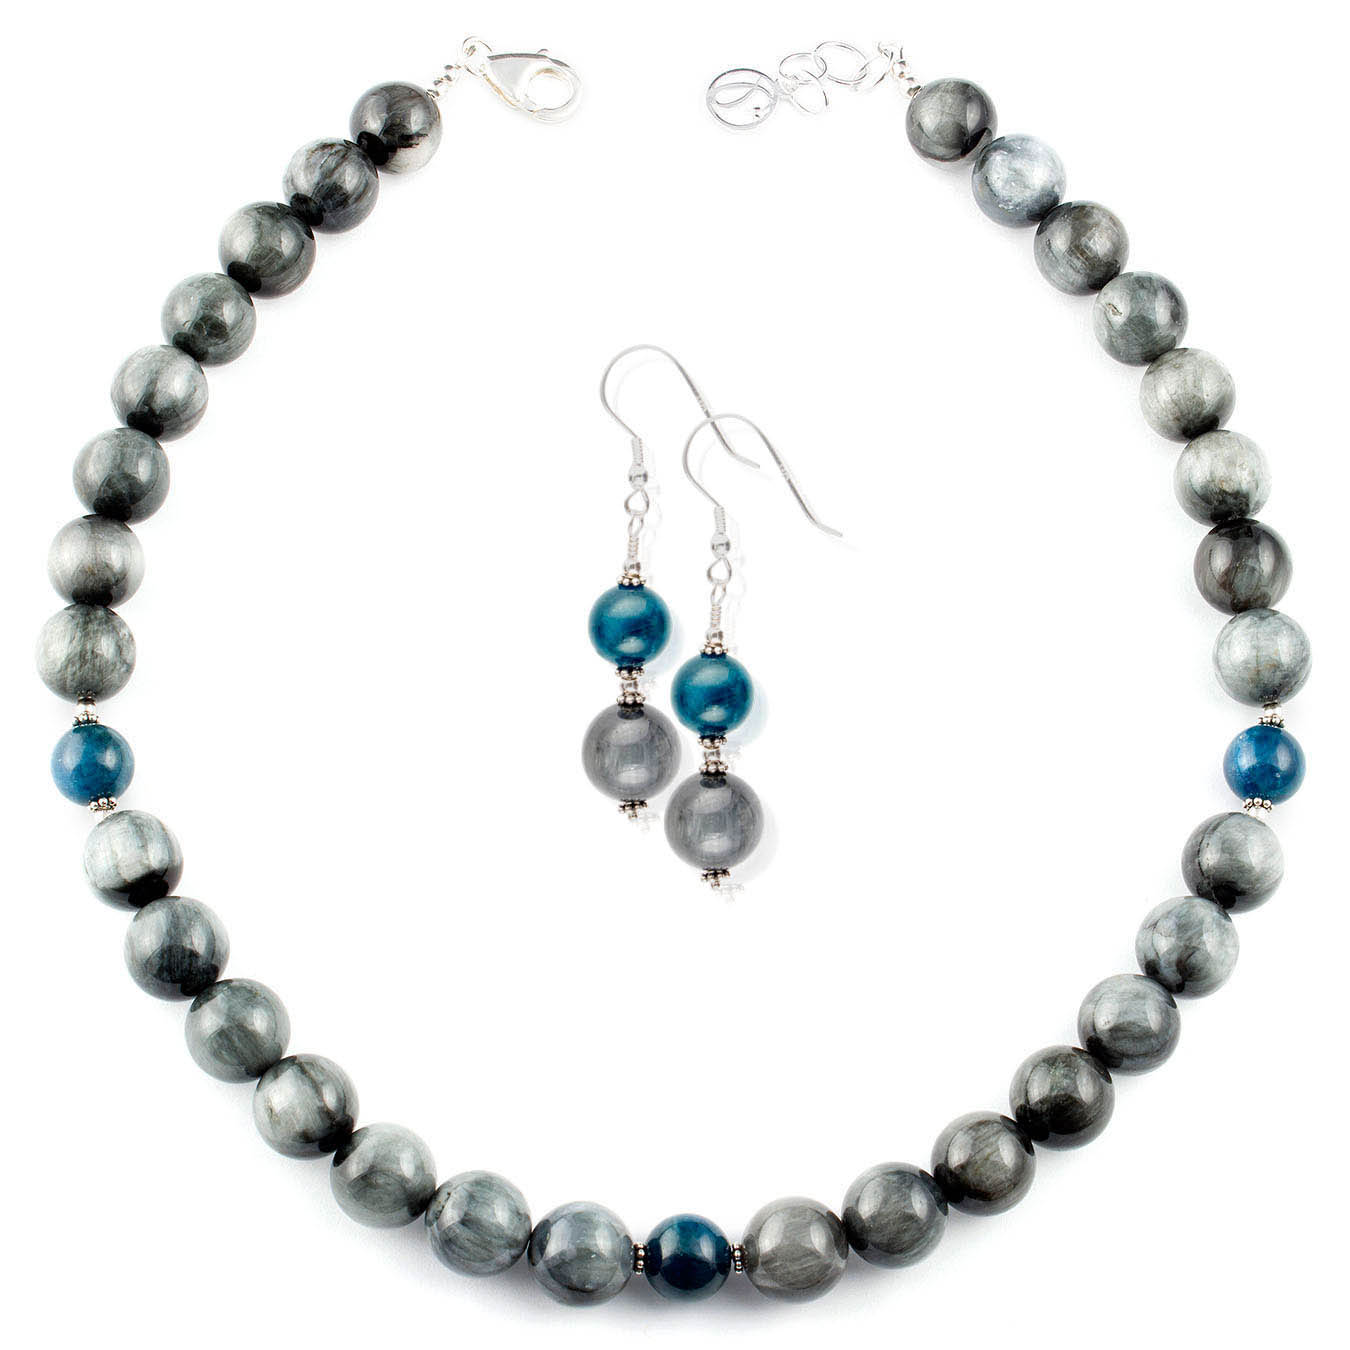 Station necklace set made with Hawks Eye and Apatite gemstones